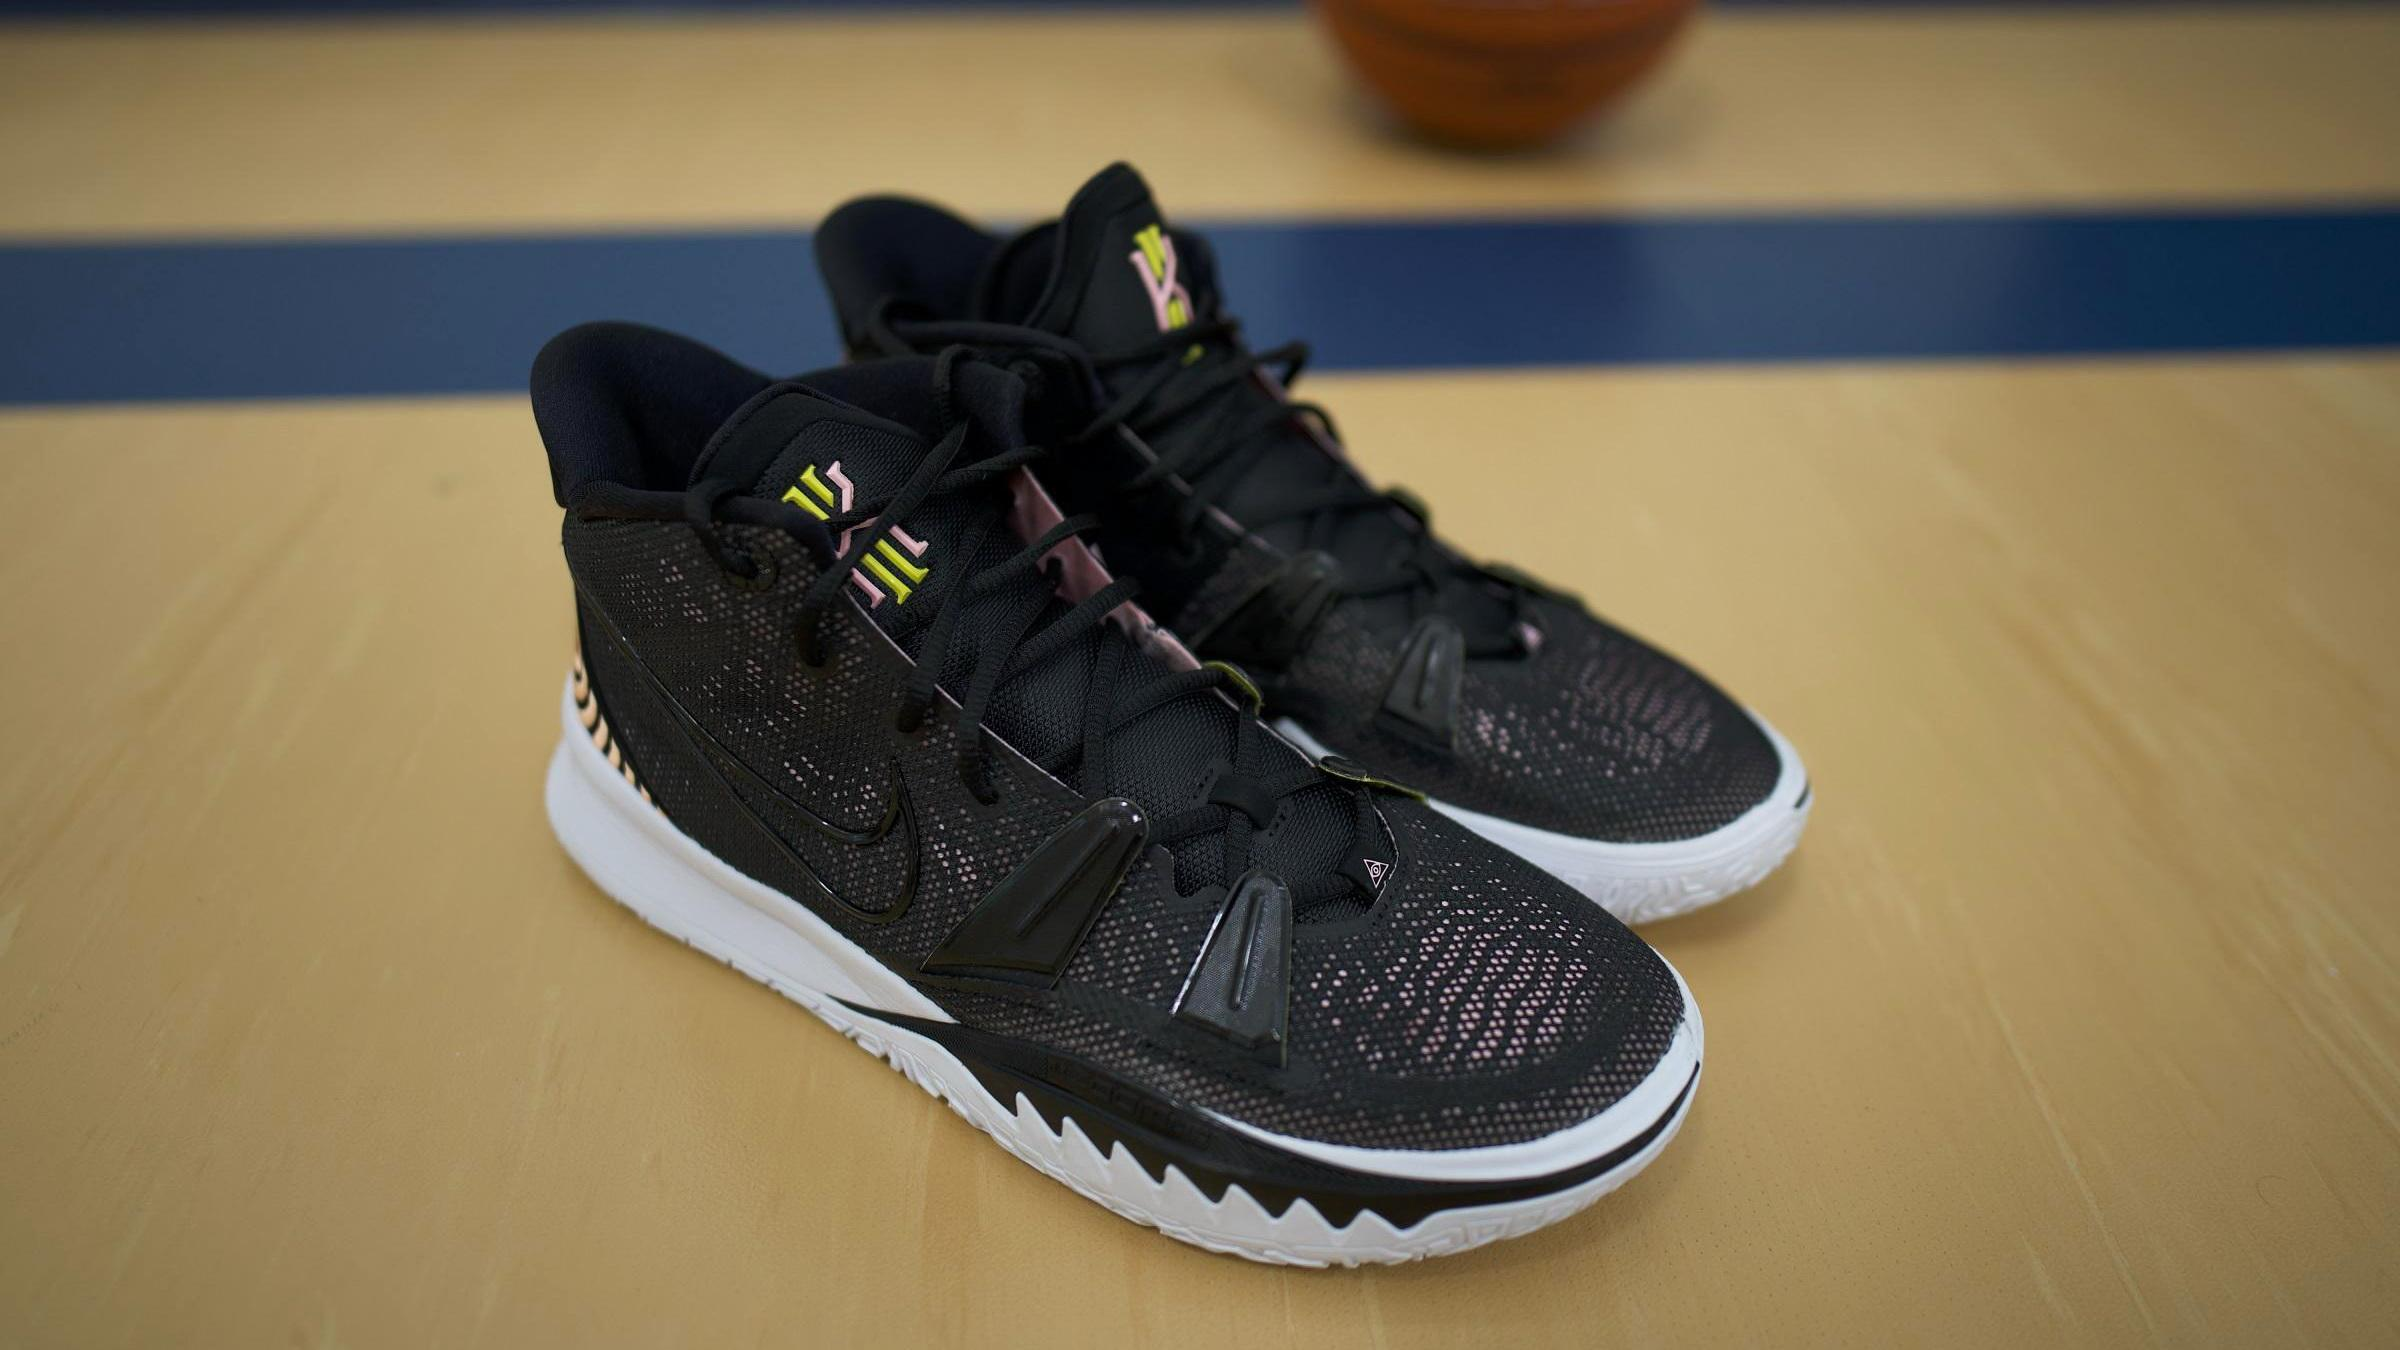 10 Best Black Basketball Shoes in 2021